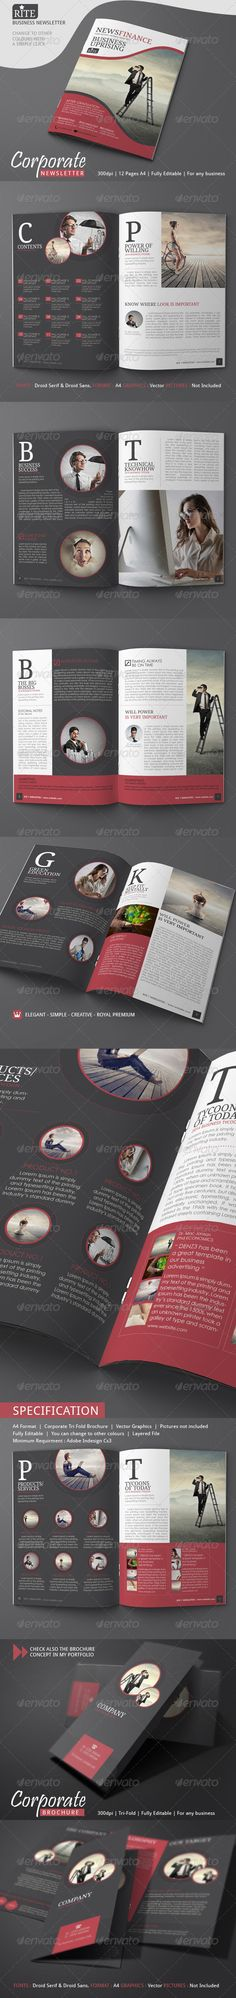 Newsletter Template (4 Pages u2013 Adjustable) Newsletter templates - employee newsletter template